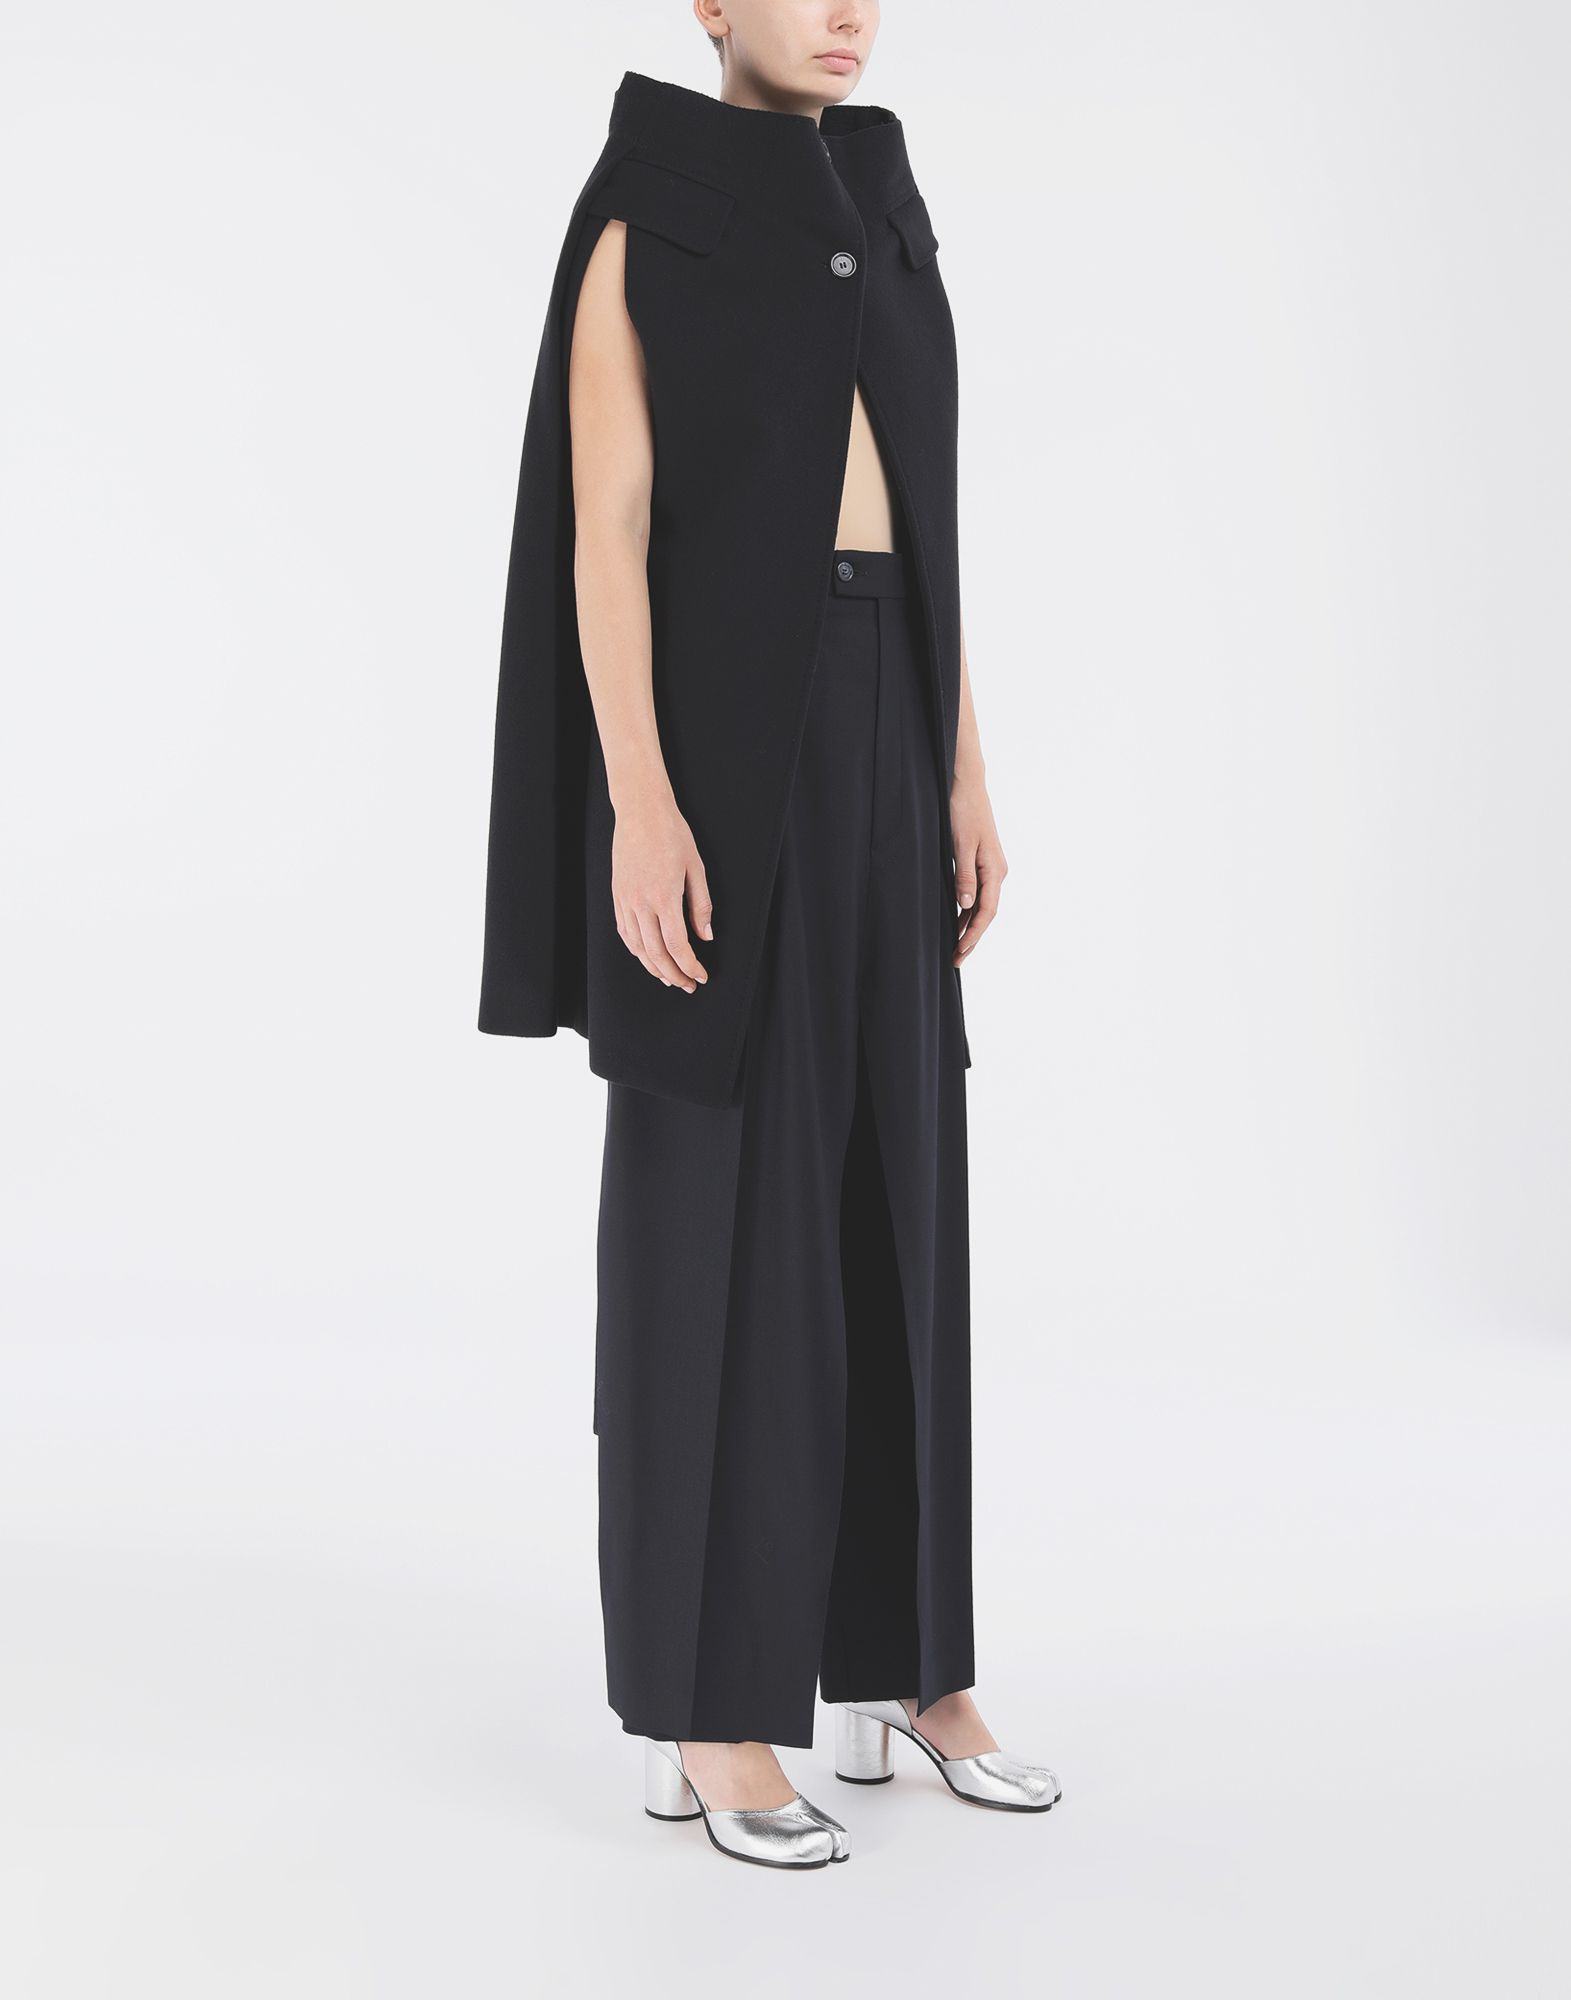 MAISON MARGIELA Spliced tailored bermuda Stole Woman d